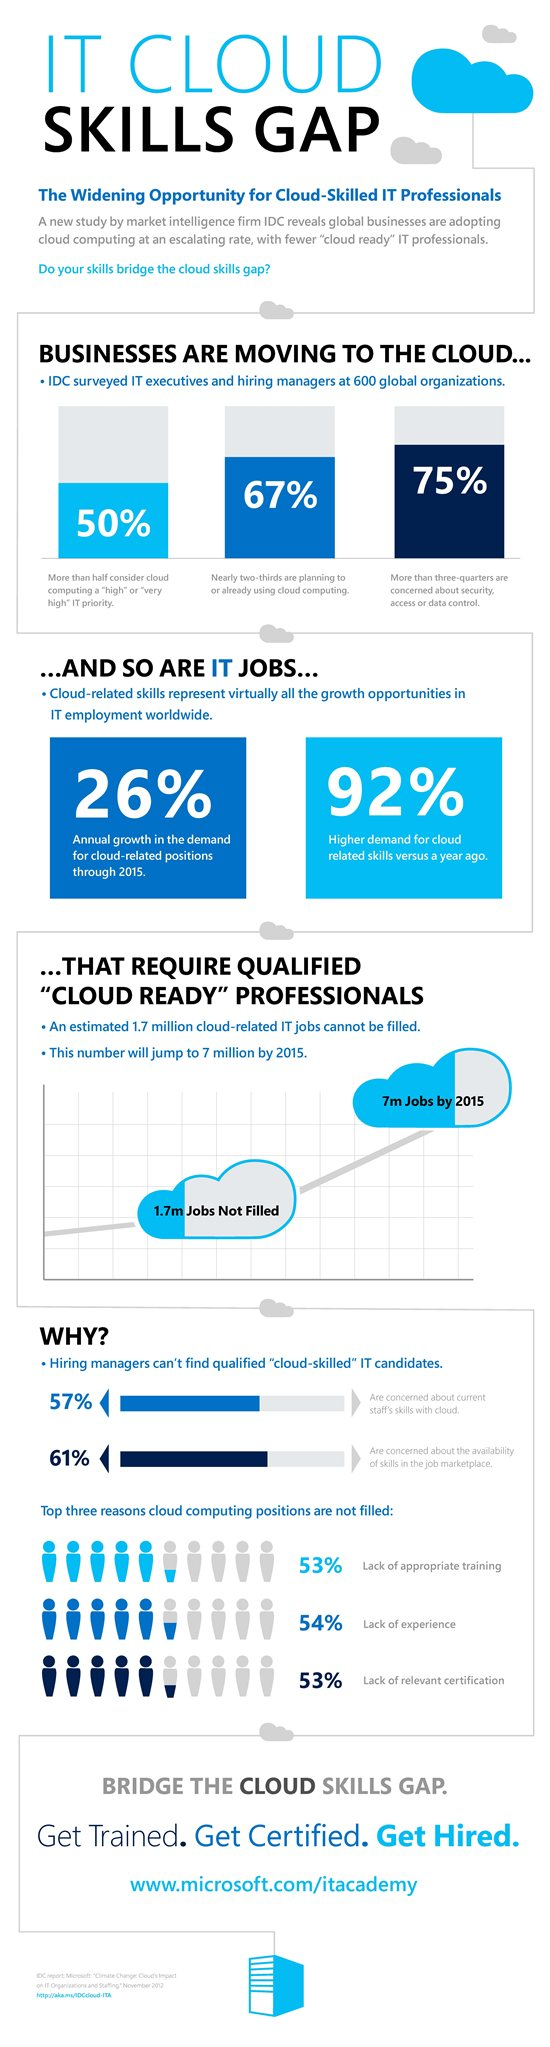 Lack Of Grads In The IT Cloud Sector